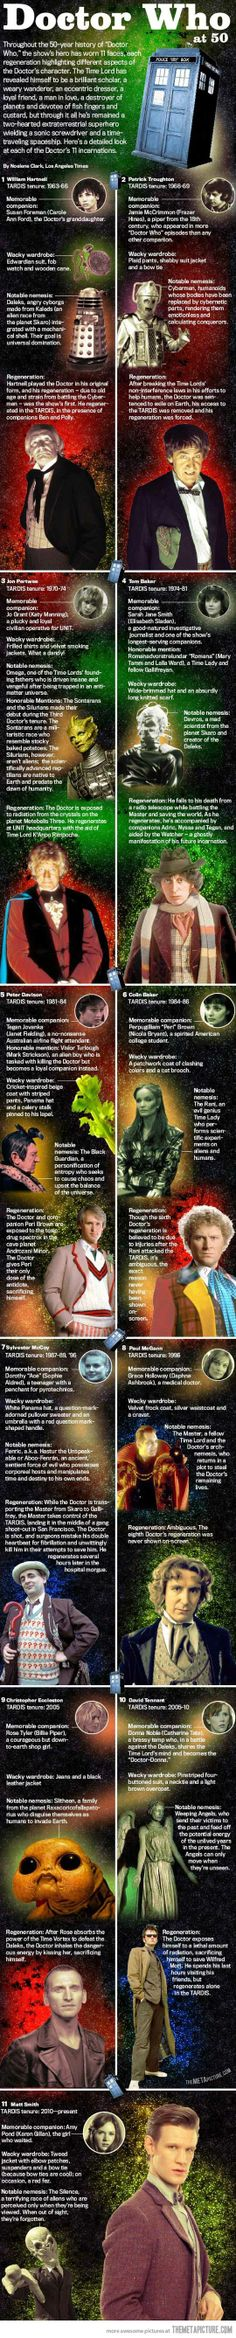 Who' at Meet the 11 faces of the Time Lord Doctor Who at [Regeneration of 11 coming soon!]Doctor Who at [Regeneration of 11 coming soon! Doctor Who, Diy Doctor, Christopher Eccleston, Dr Who, Serie Doctor, Fandoms, Don't Blink, Torchwood, Geek Out